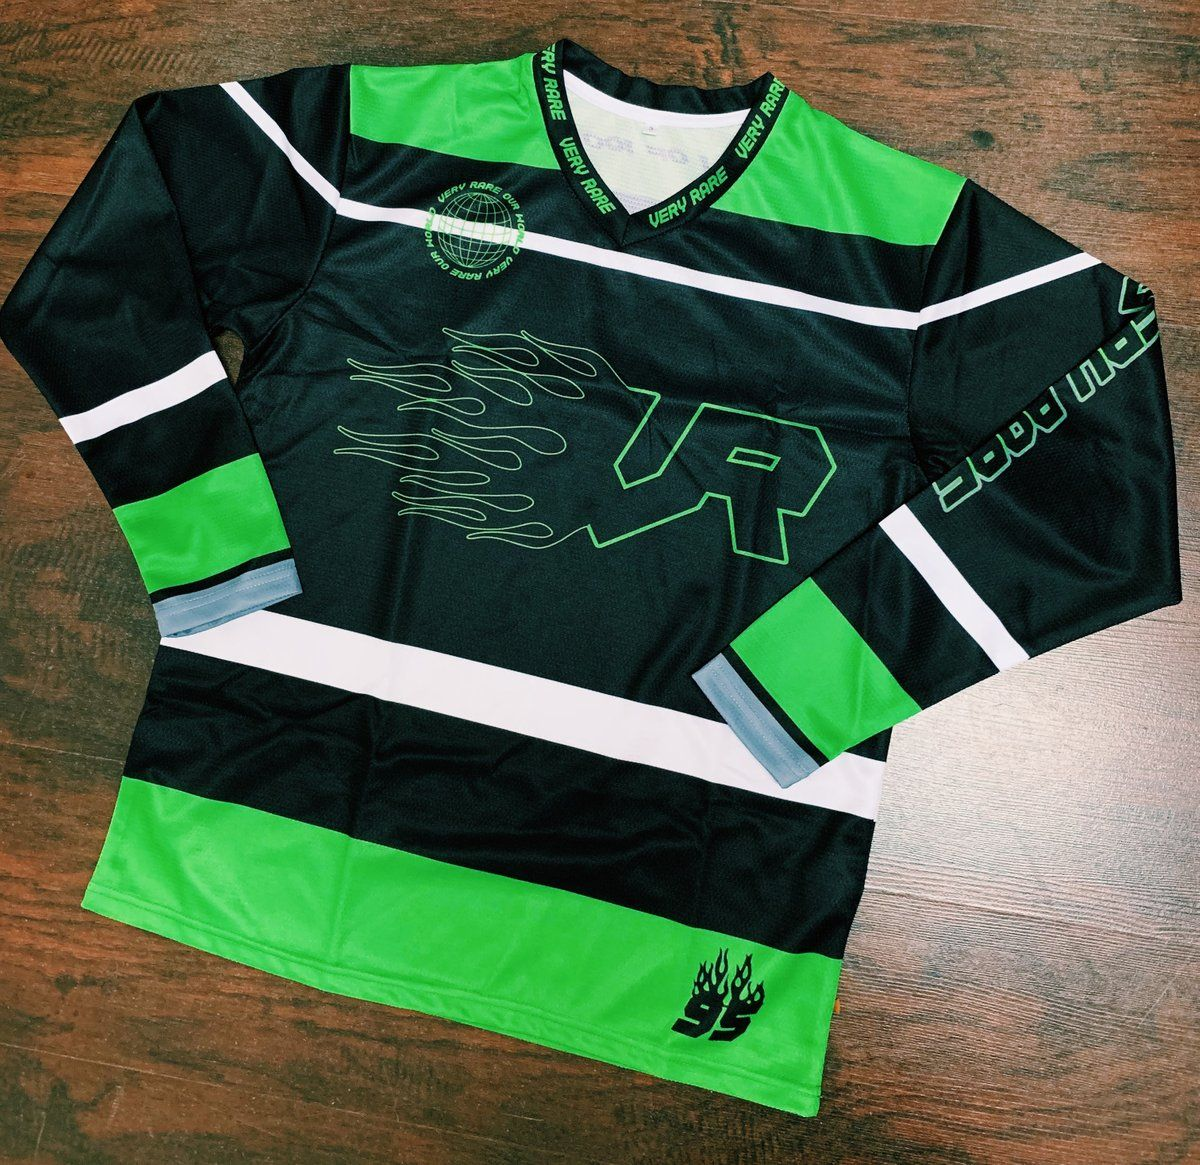 b9219be5e2d Very Rare hockey jersey in 2019 | Shit That Gets Me Lit | Mens tops ...